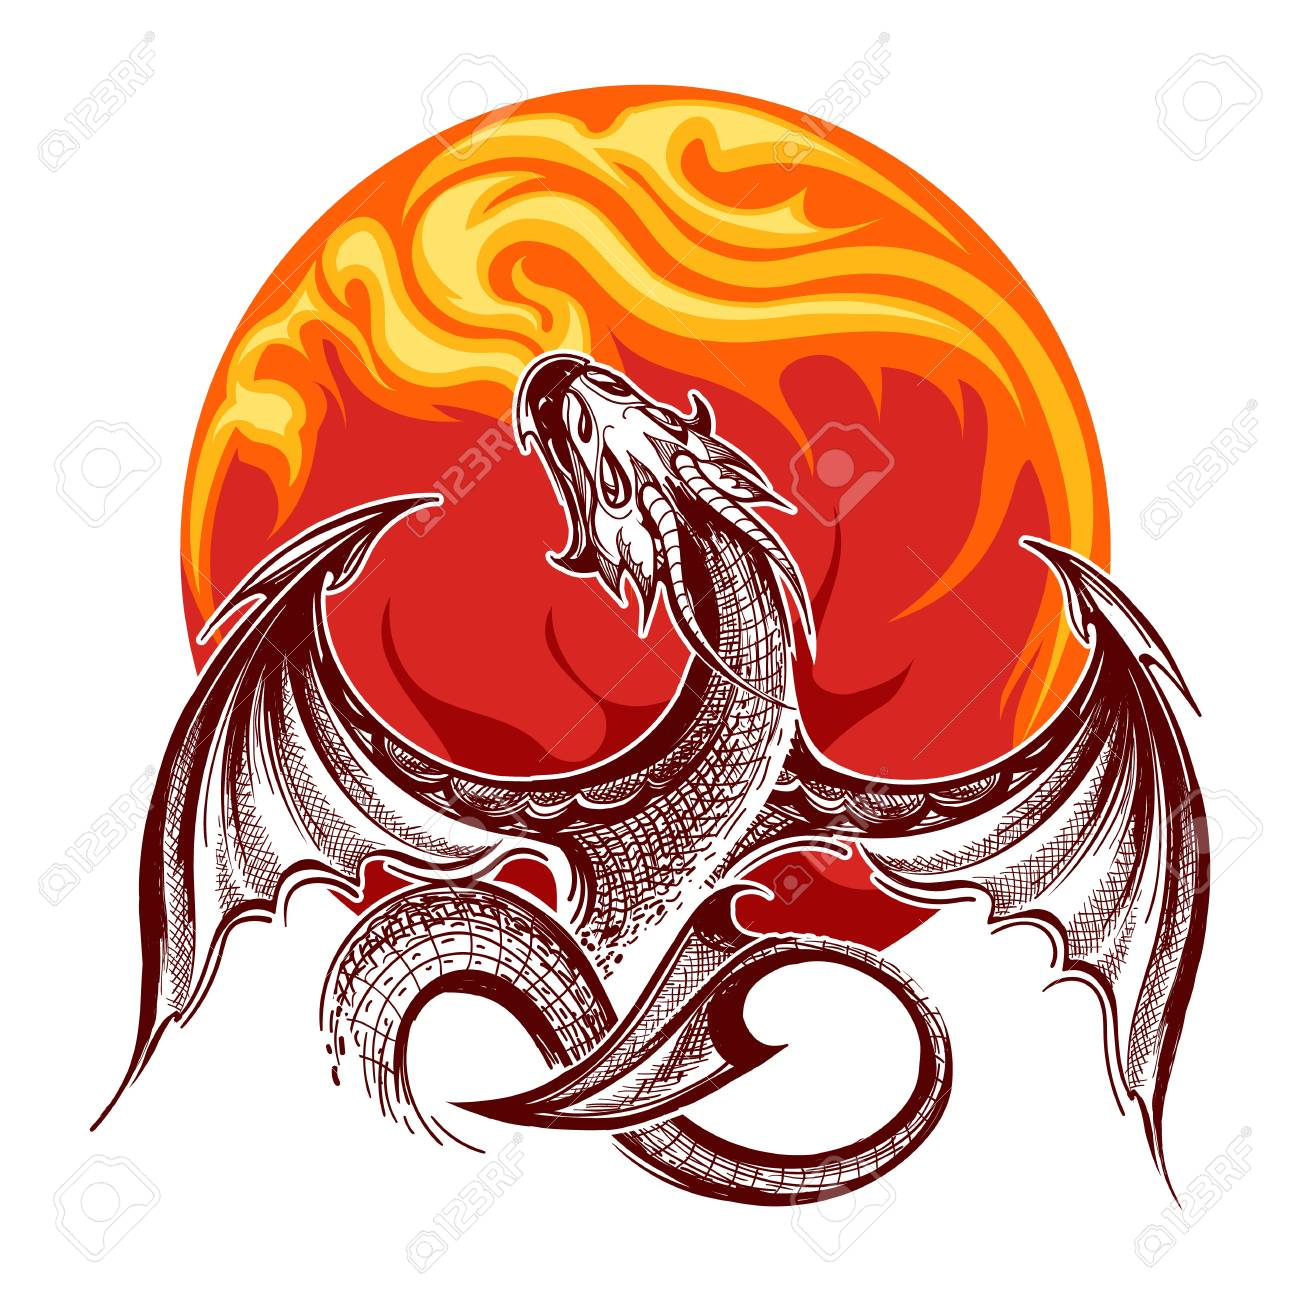 Flying fire-breathing Dragon on flame background. Vector illustration. - 123436621